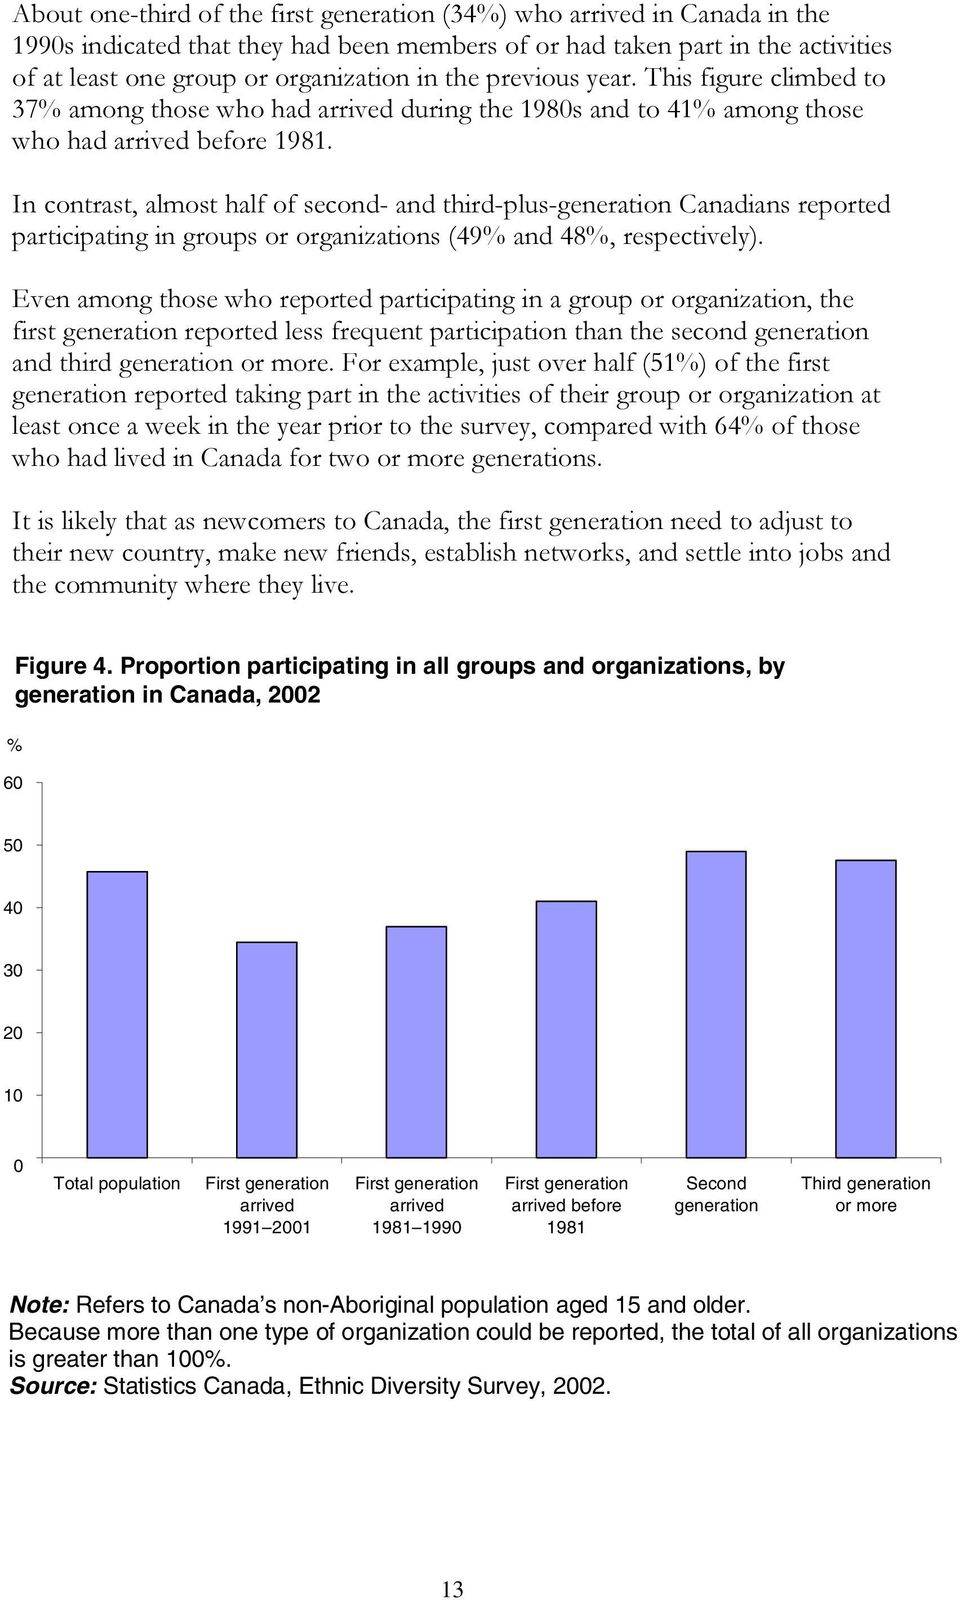 In contrast, almost half of second- and third-plus-generation Canadians reported participating in groups or organizations (49% and 48%, respectively).